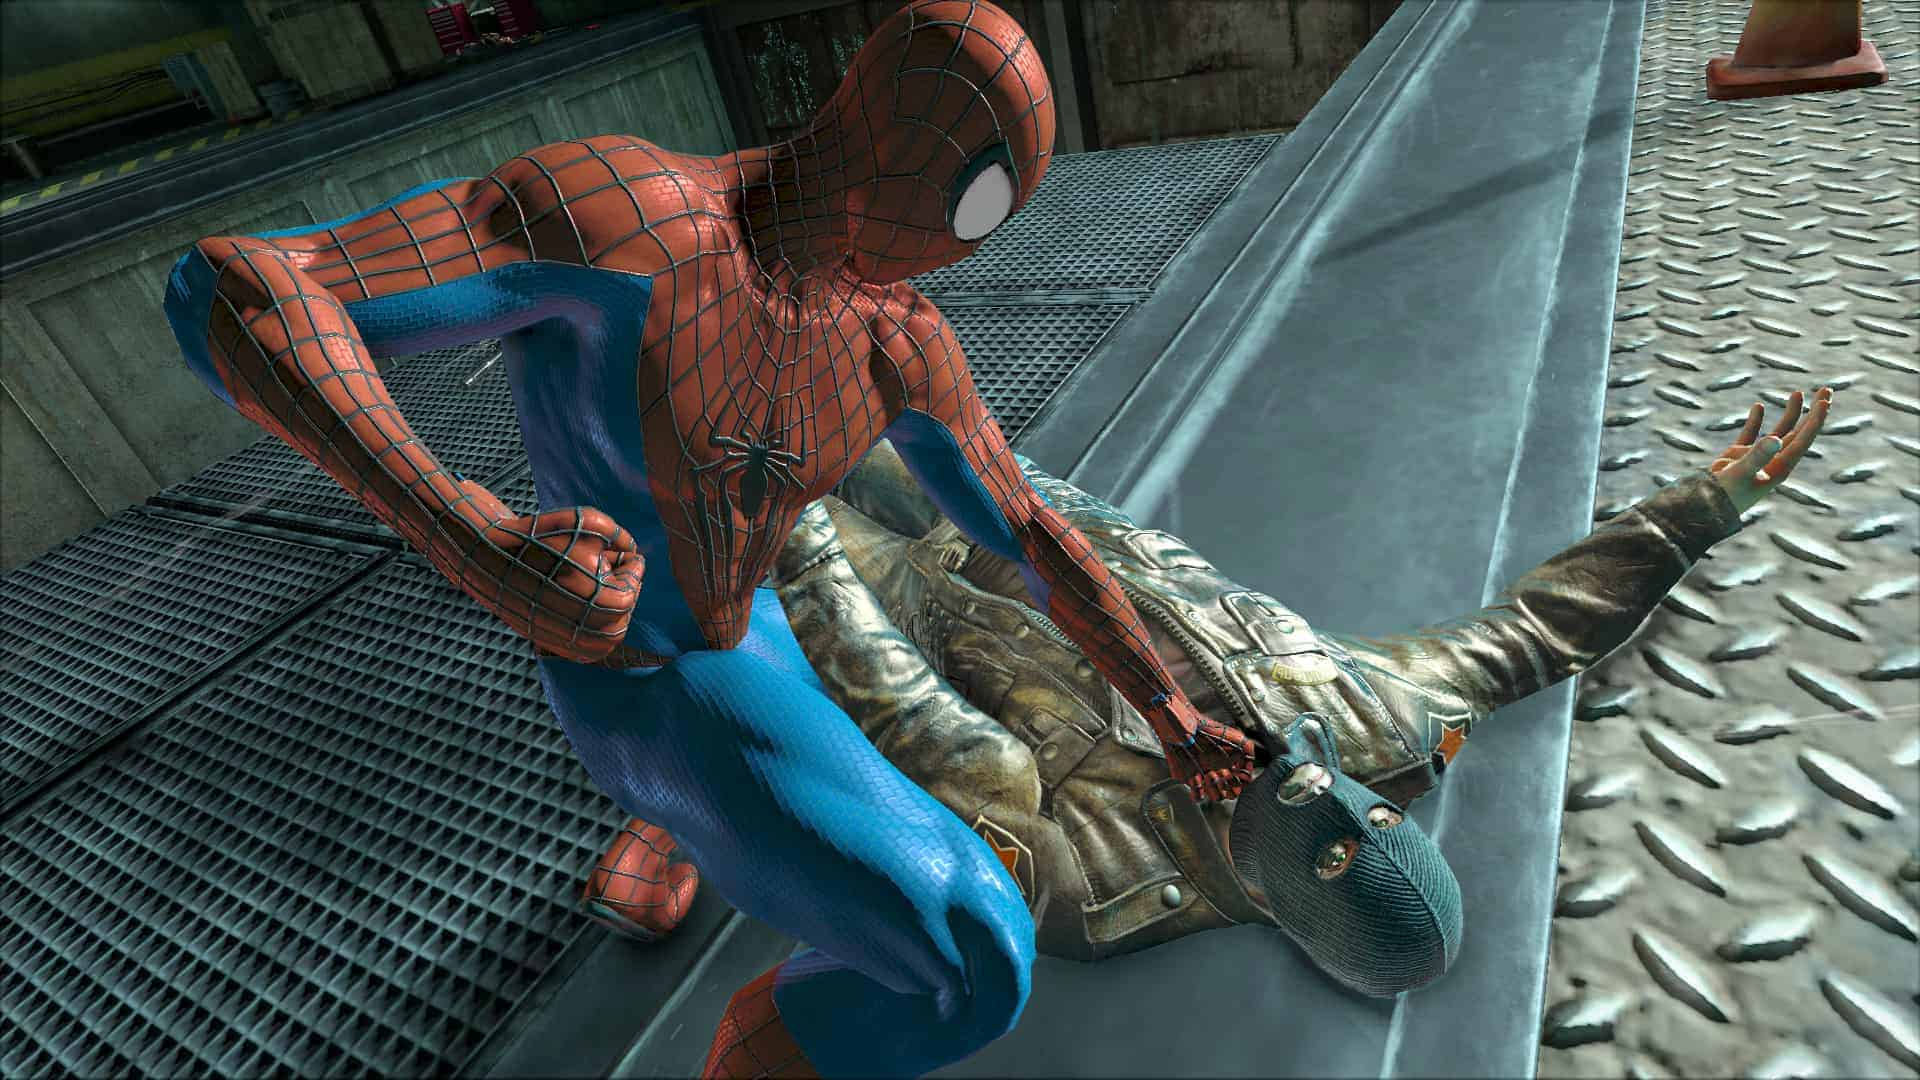 Download spiderman exe game for free (Windows)